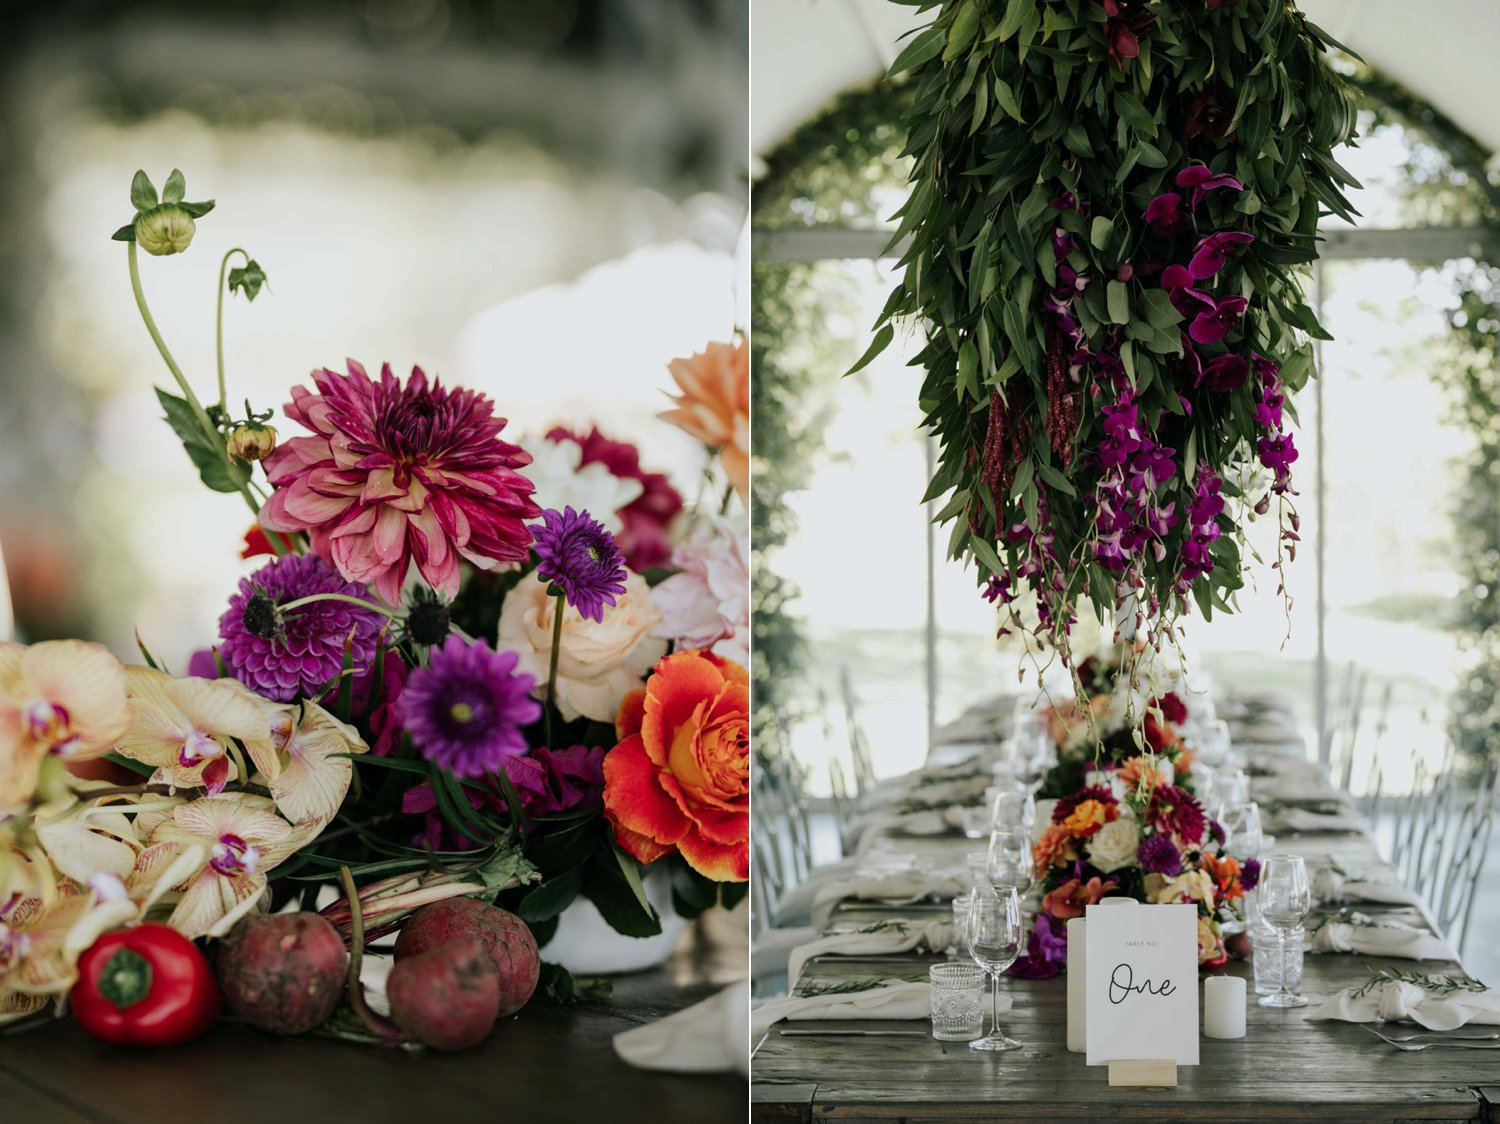 Bright beautiful trending wedding flowers with berries and vegetables